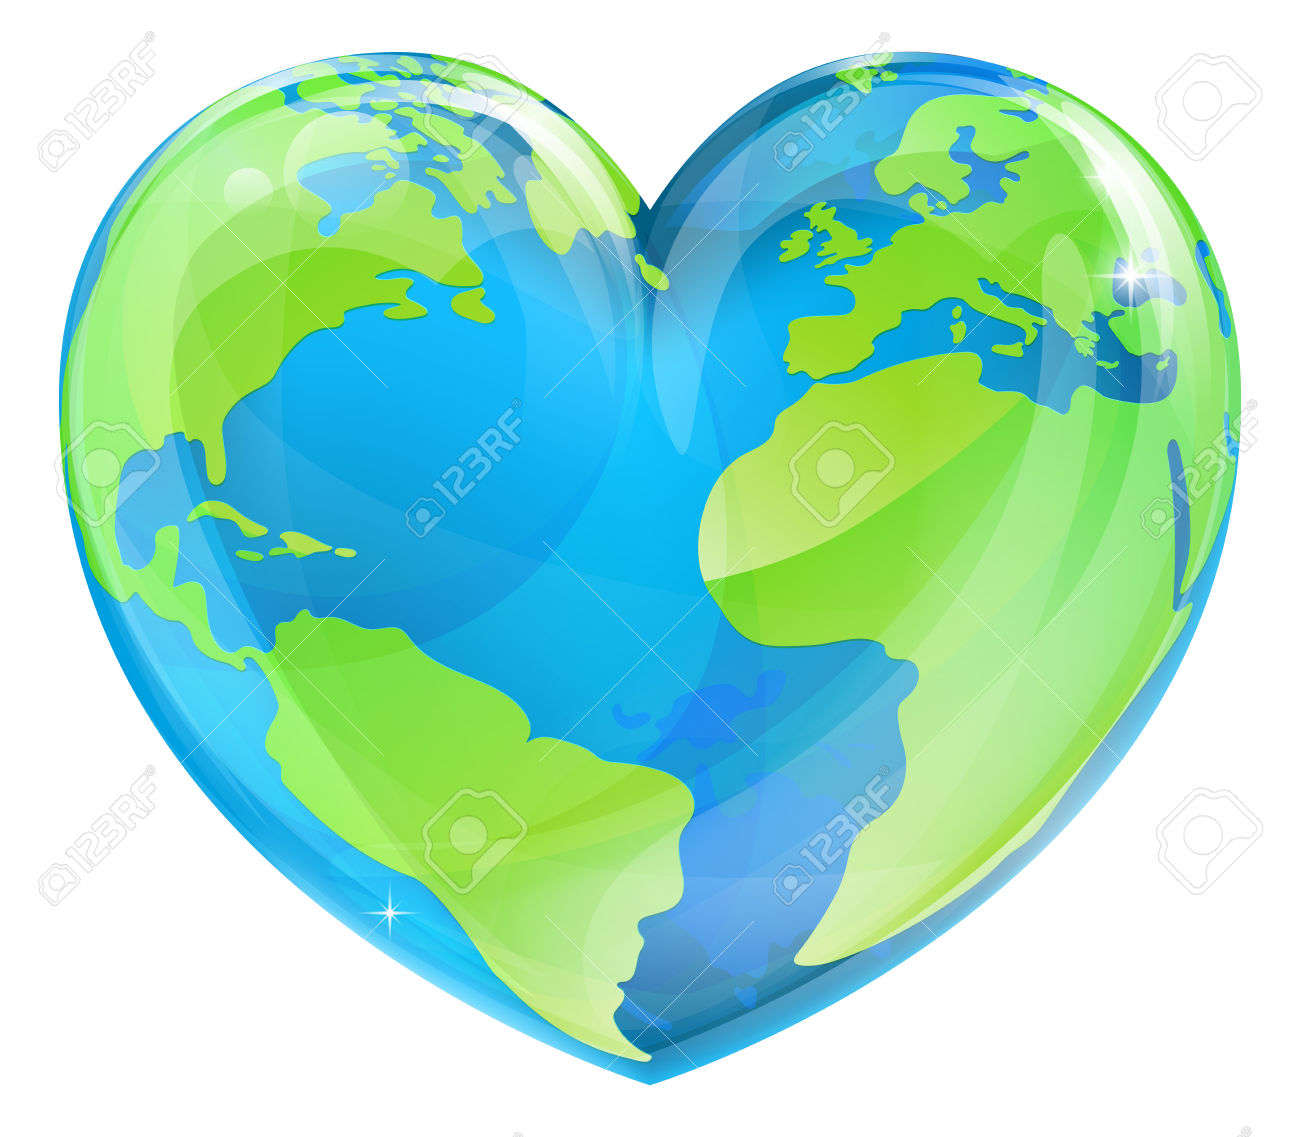 Heart Earth Images & Stock Pictures. Royalty Free Heart Earth.